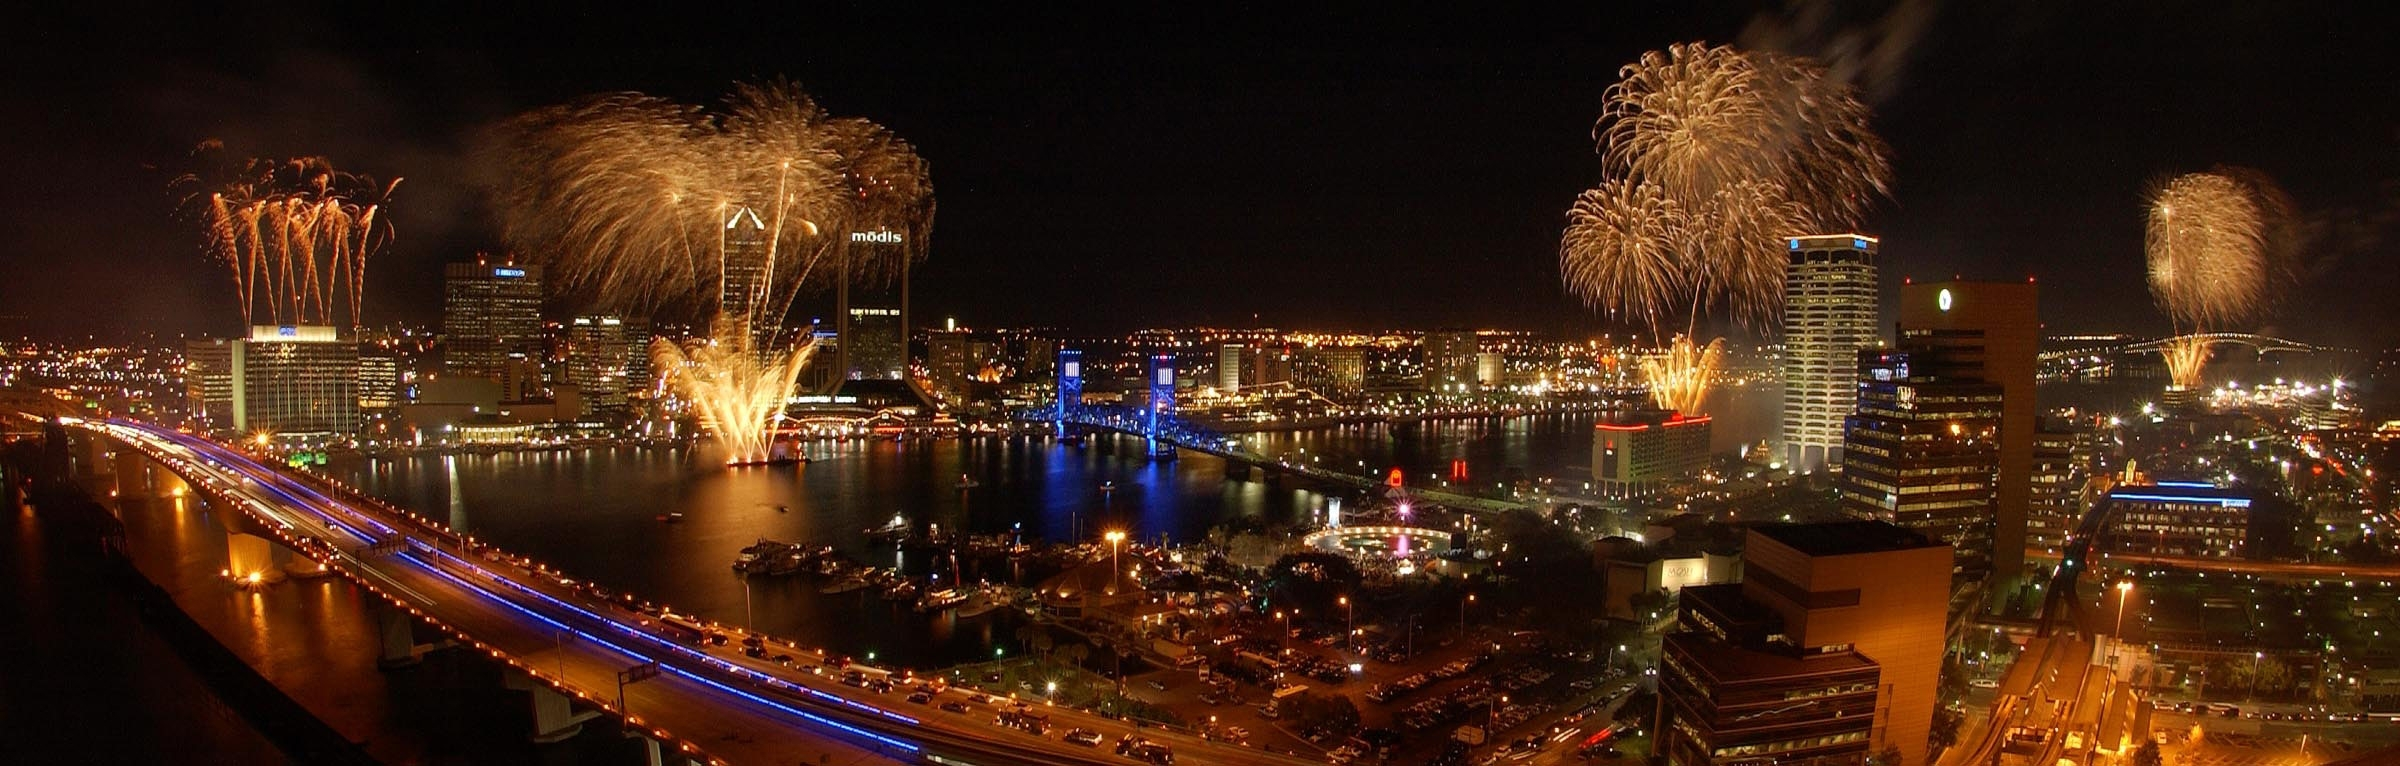 Looking for 4th of July fireworks? Here's where you can watch the sparks fly